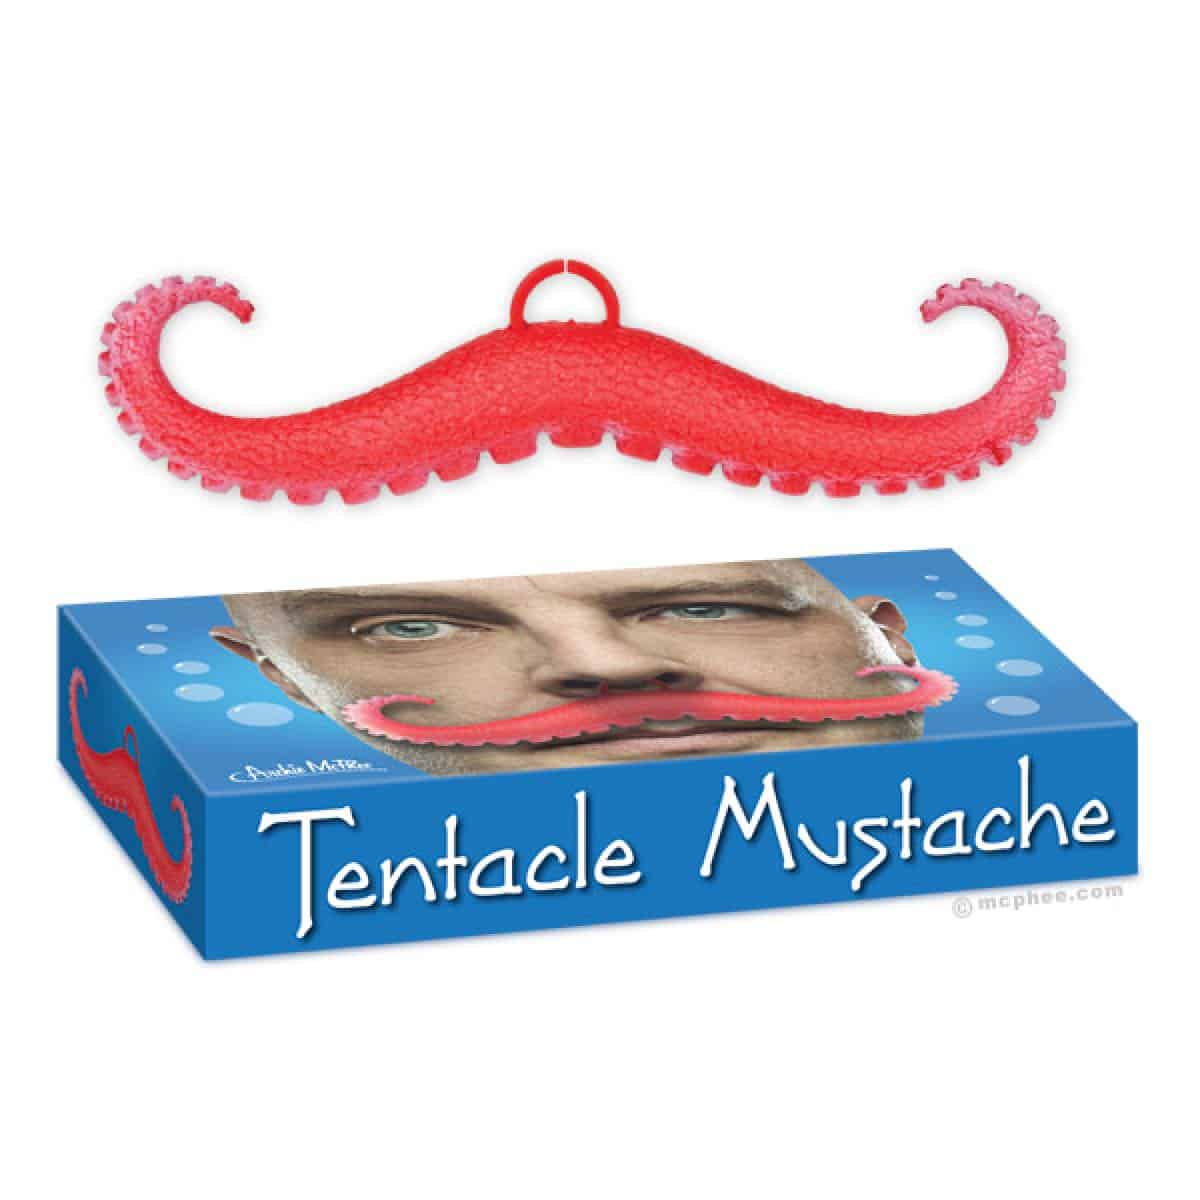 Tentacle Mustache Soft Kids Toy